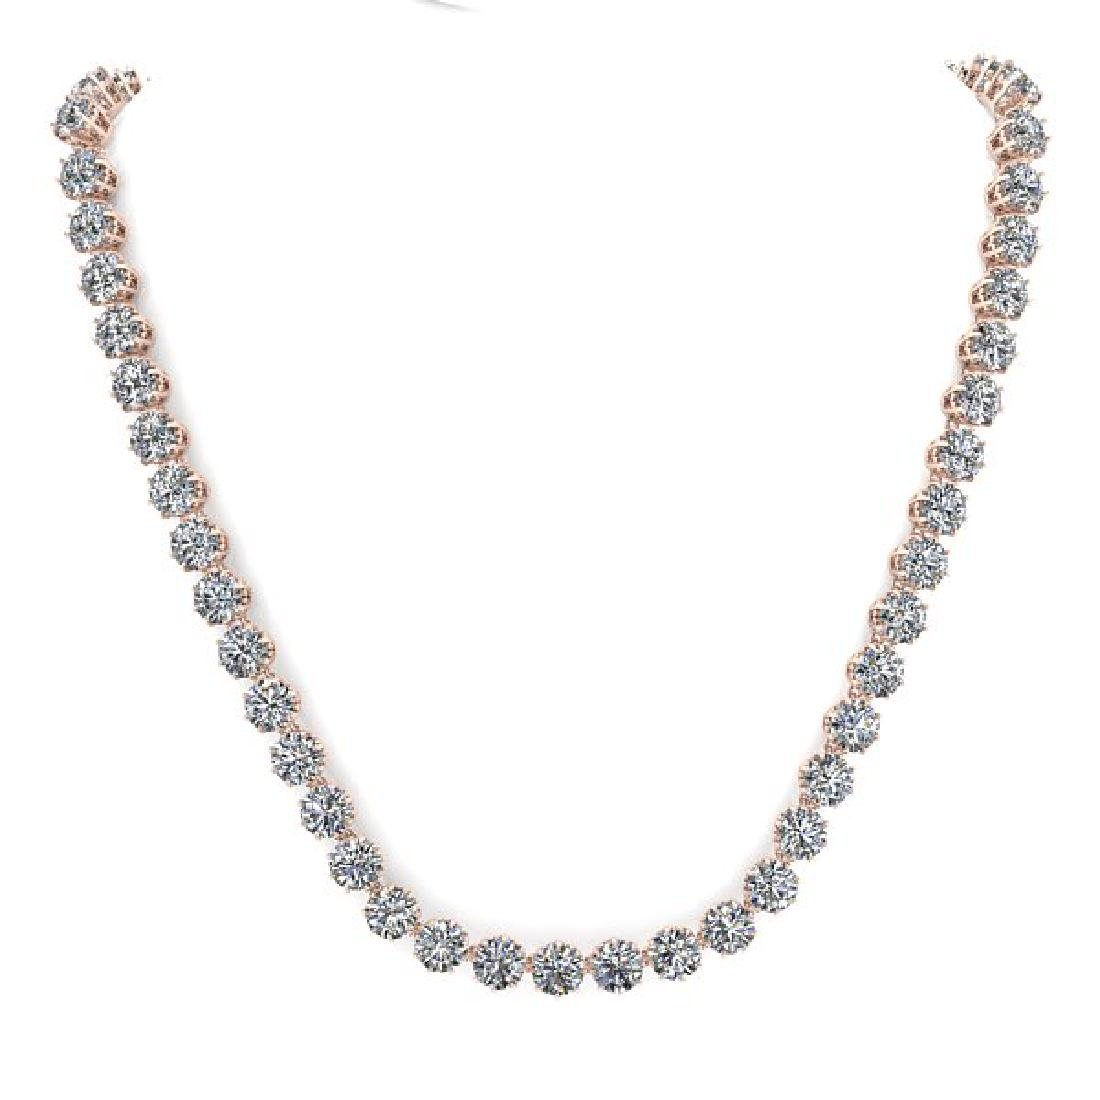 40 CTW SI Certified Diamond Necklace 18K Rose Gold - 3